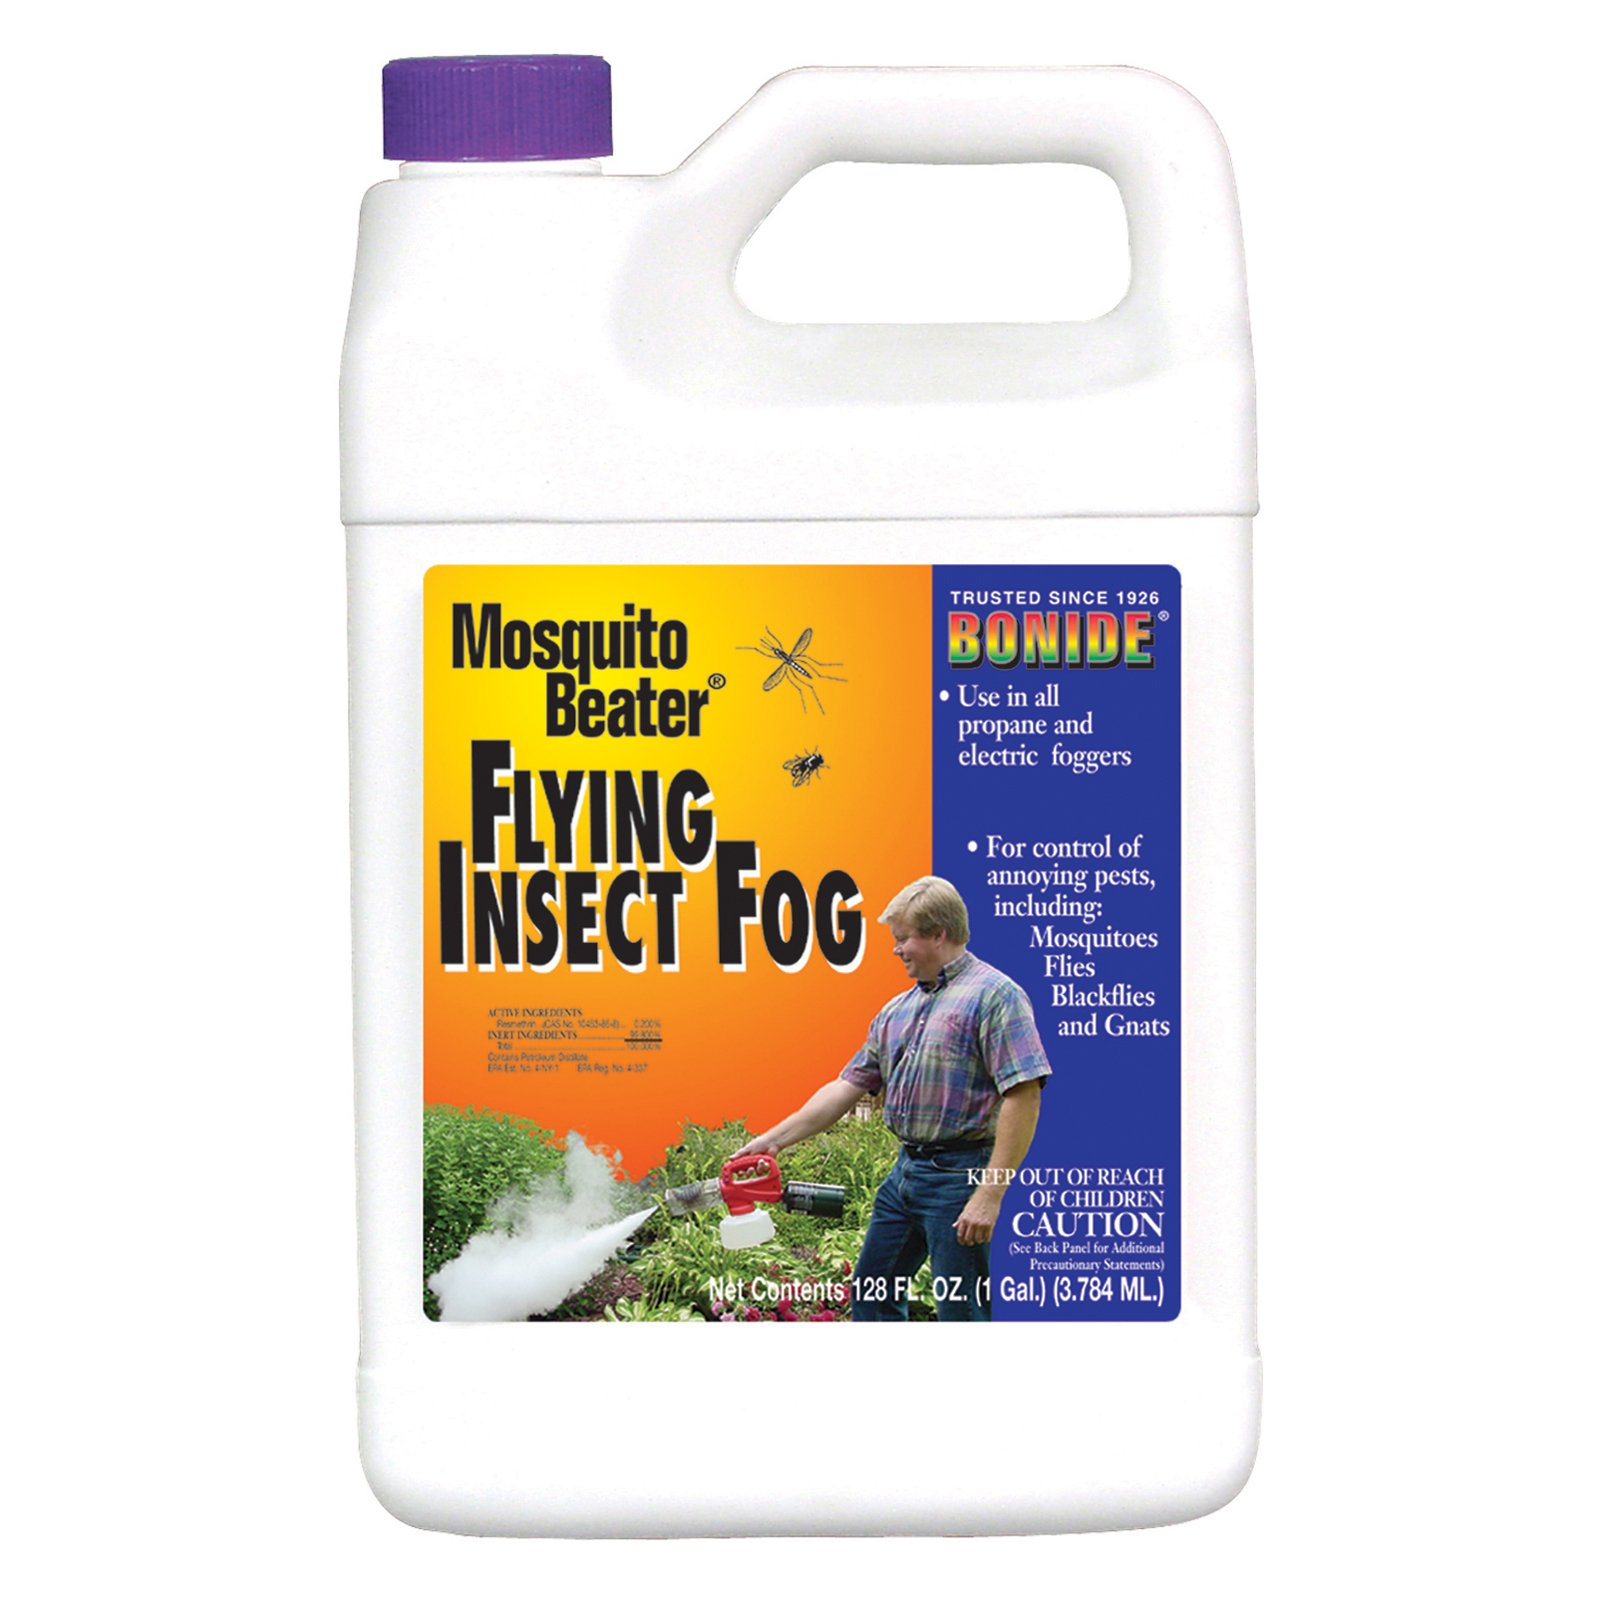 Bonide Mosquito Beater Flying Insect Fog - 128 oz.